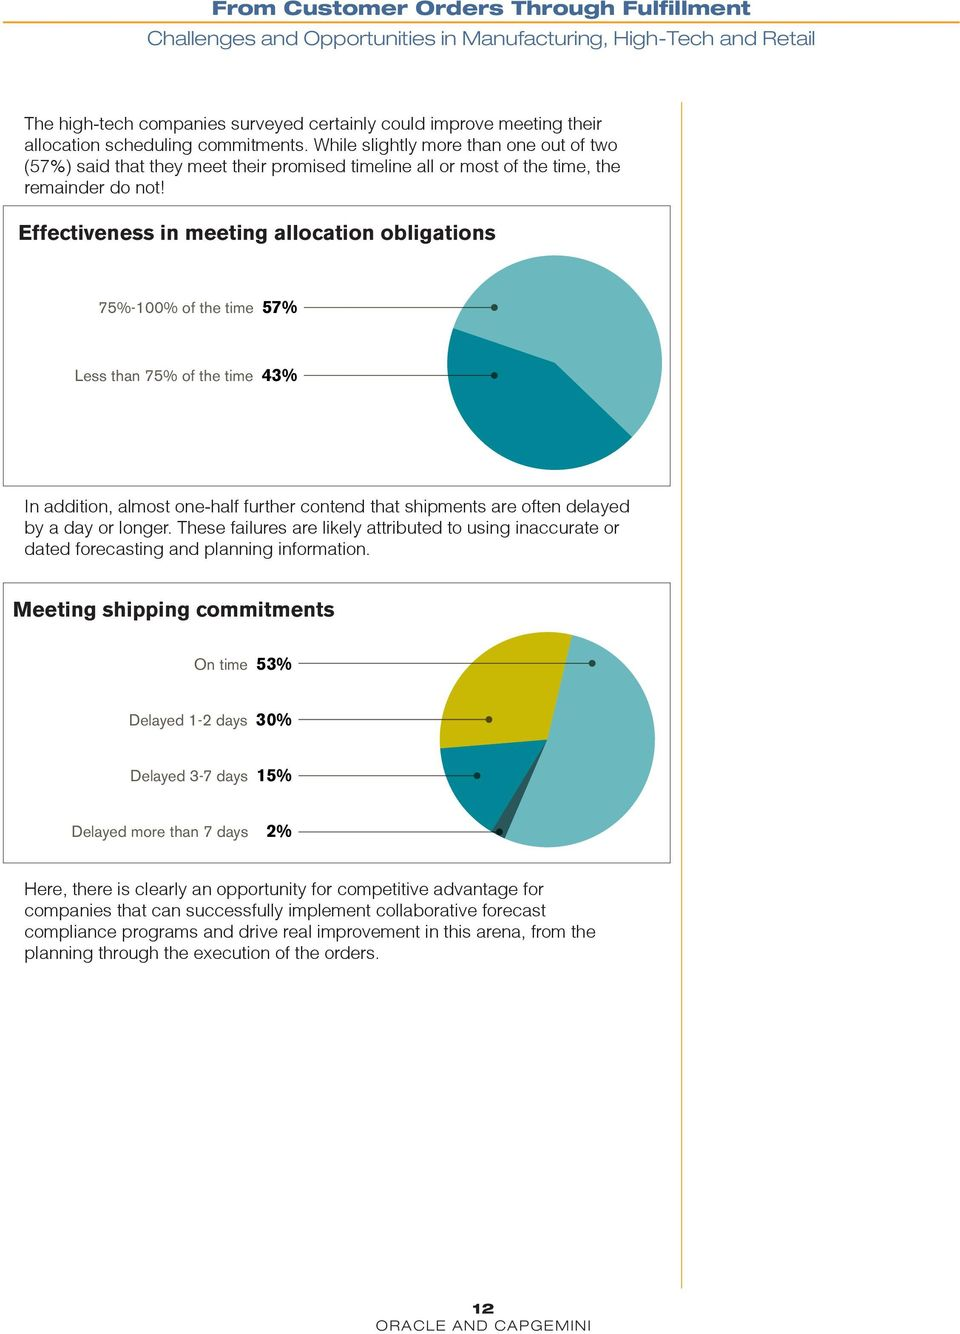 Effectiveness in meeting allocation obligations 75%-100% of the time 57% Less than 75% of the time 43% In addition, almost one-half further contend that shipments are often delayed by a day or longer.